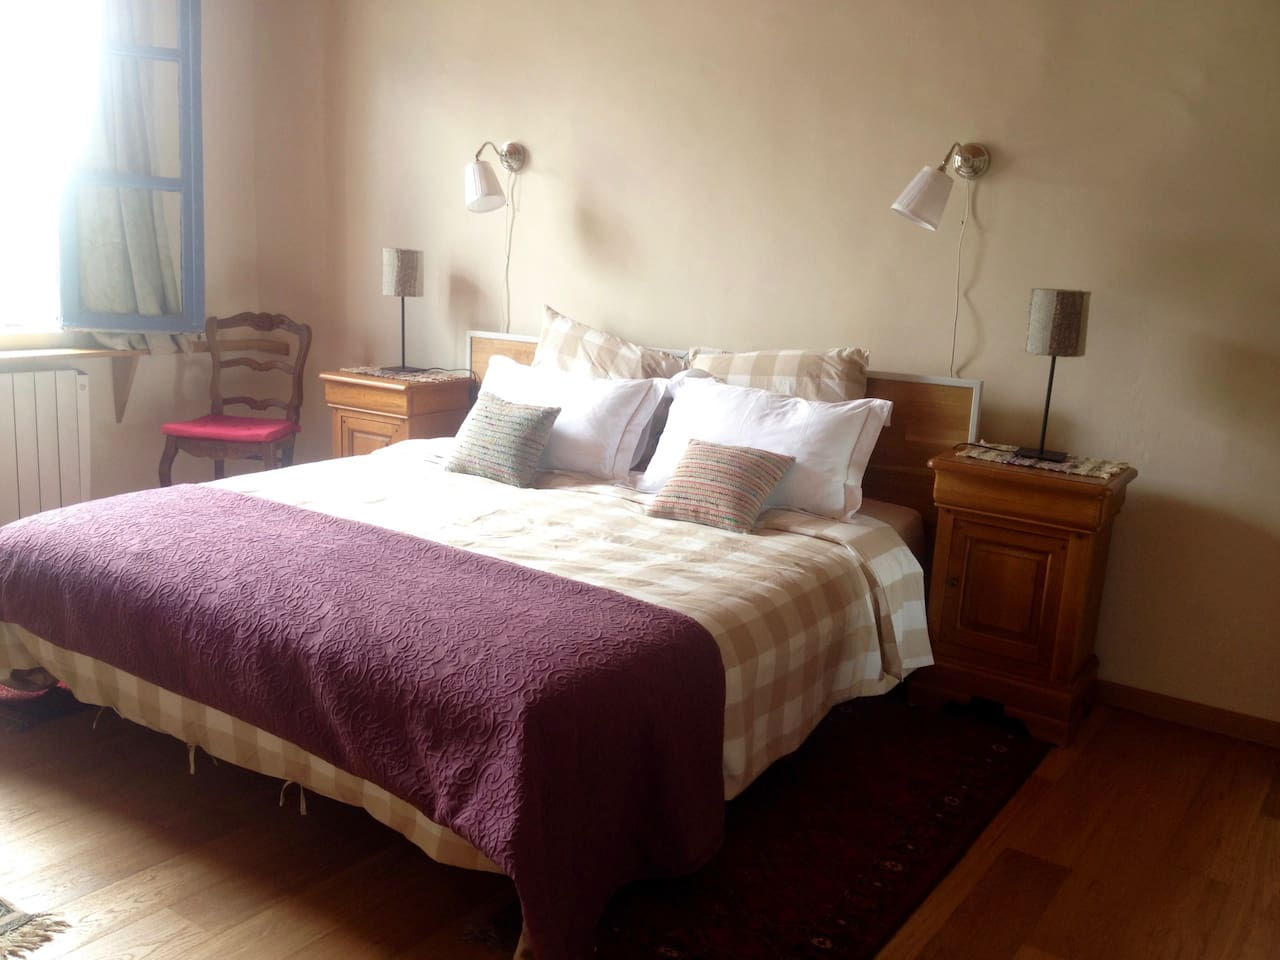 Bedroom 'Le Faubourg' with double bed